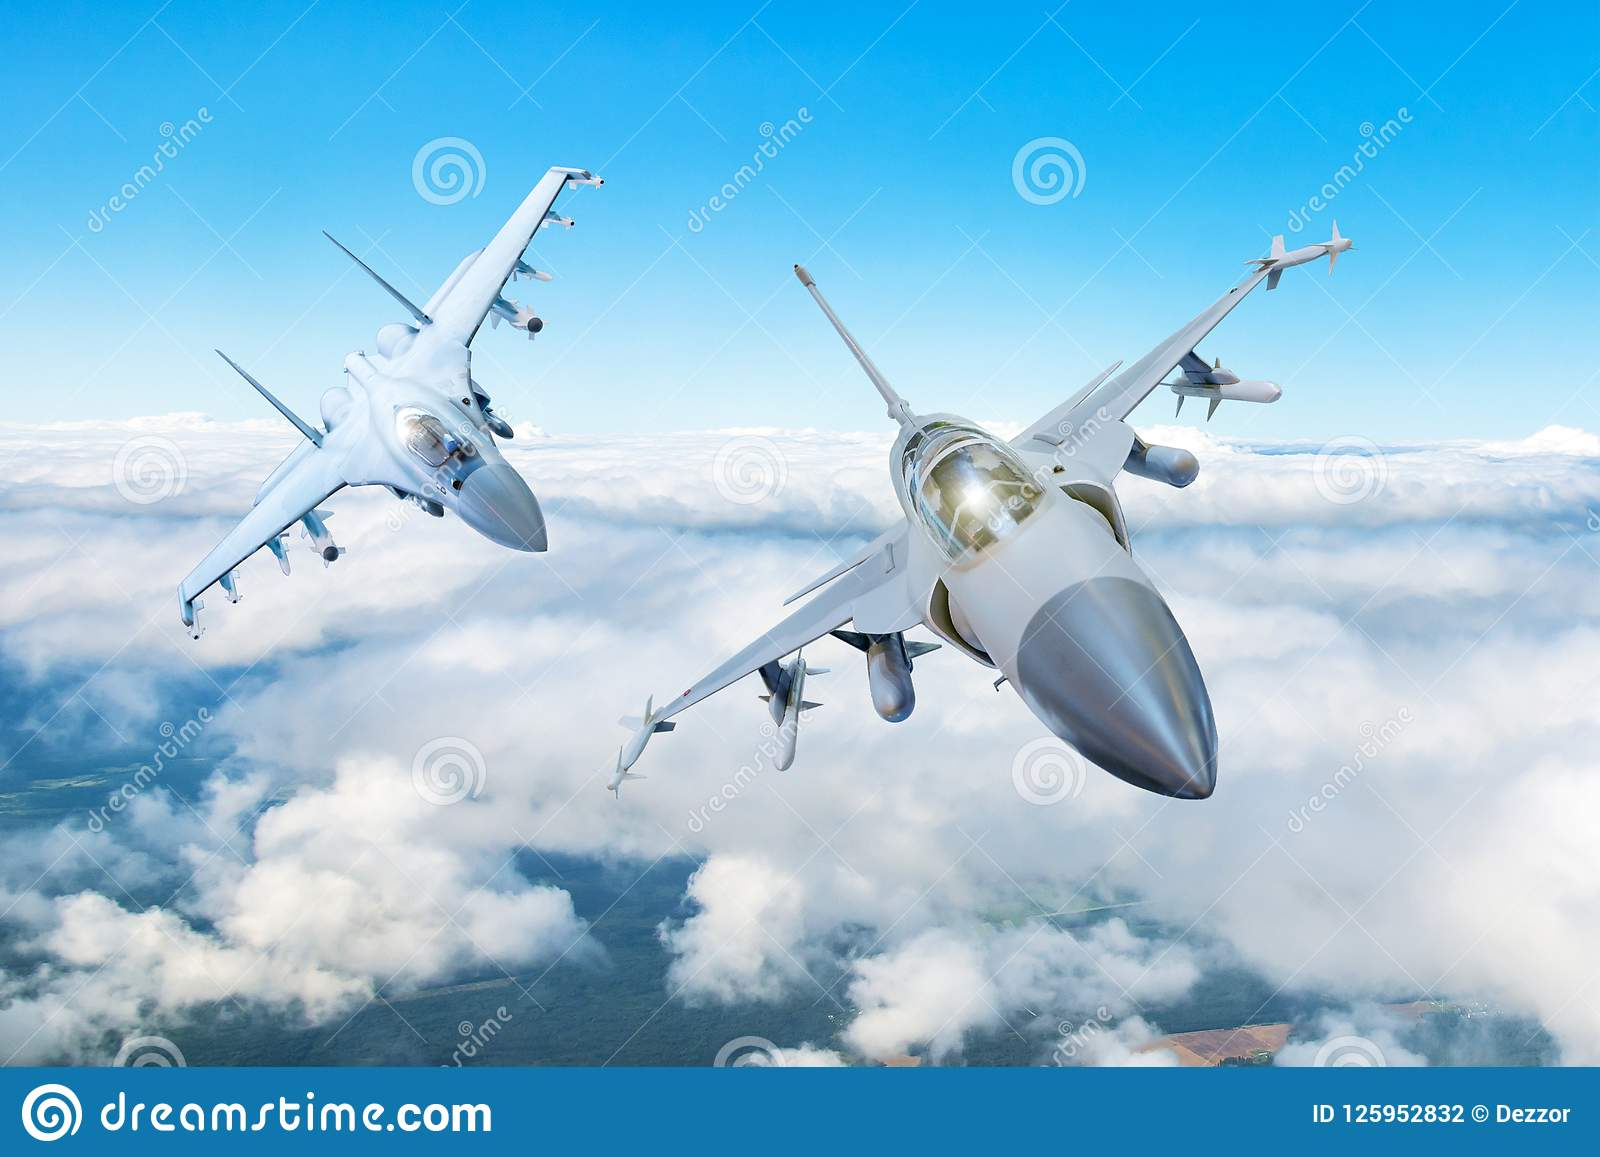 Pair of combat fighter jet on a military mission with weapons - rockets, bombs, weapons on wings flies high in the sky above the c